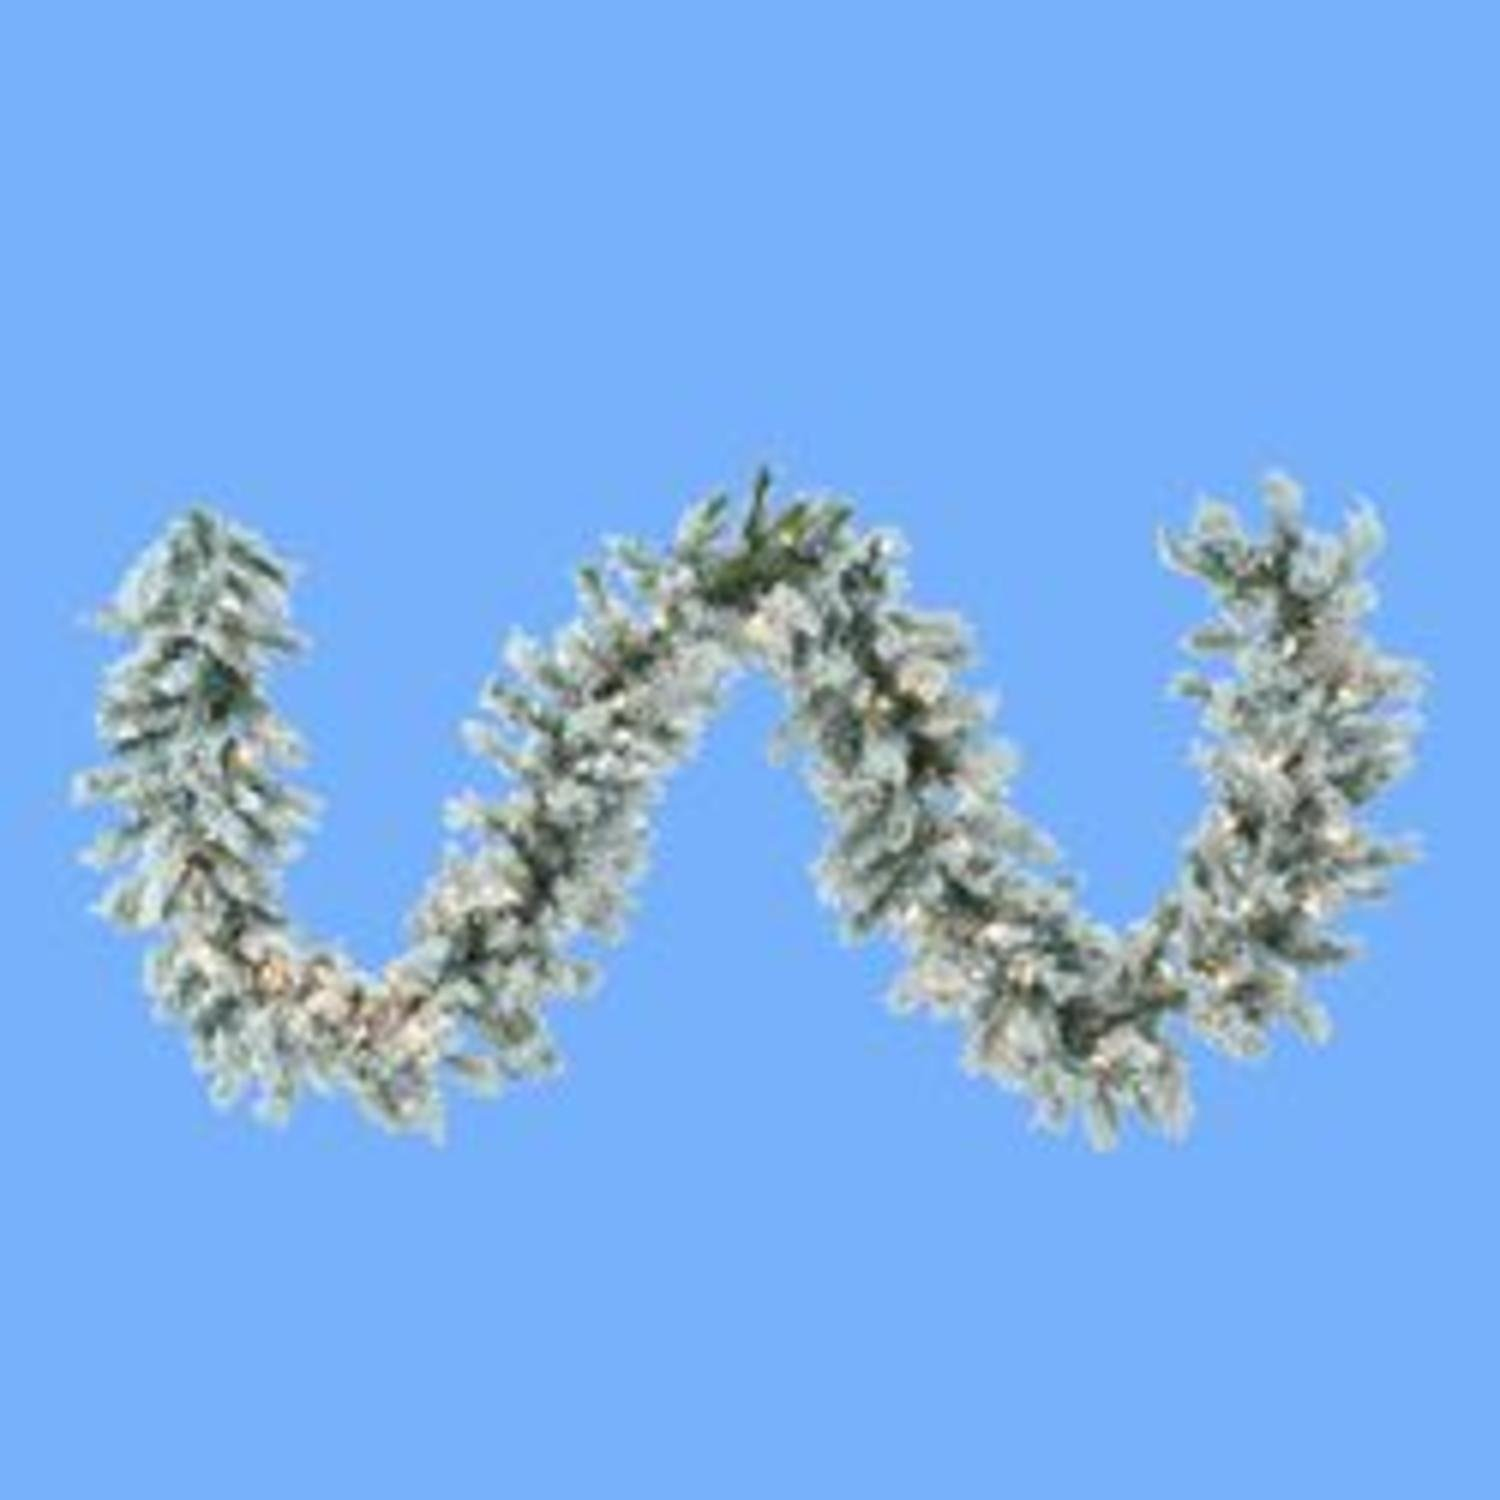 9' Pre-lit Flocked Norway Pine Artificial Christmas Garland - Clear Lights